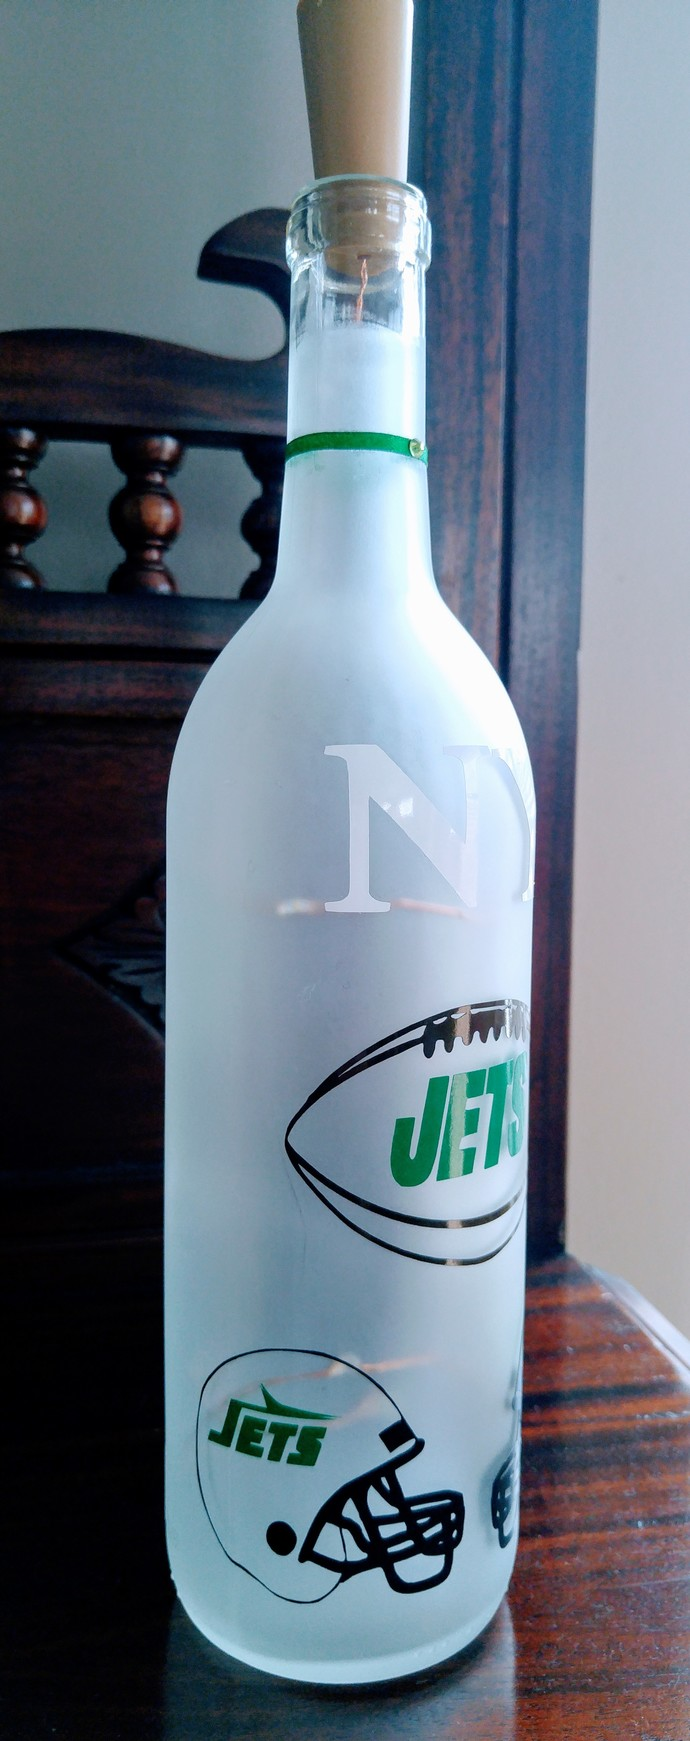 NY Jets light bottle.